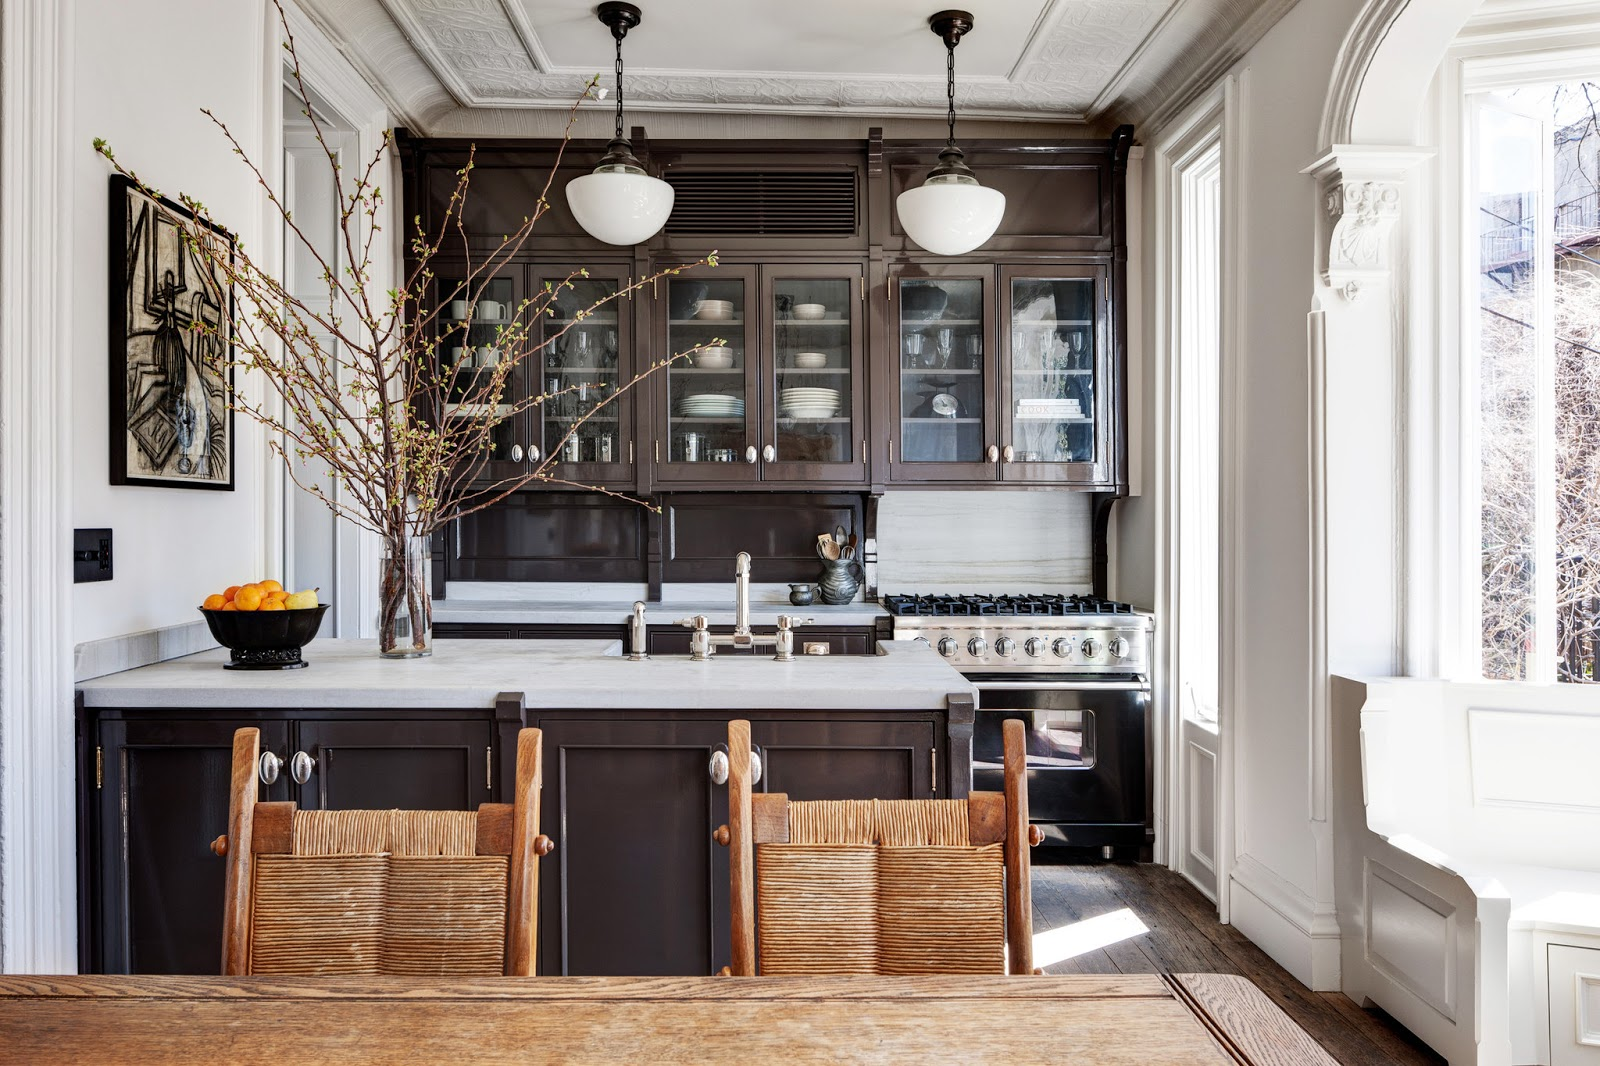 brooklyn-brownstone-great-homes-kitchens